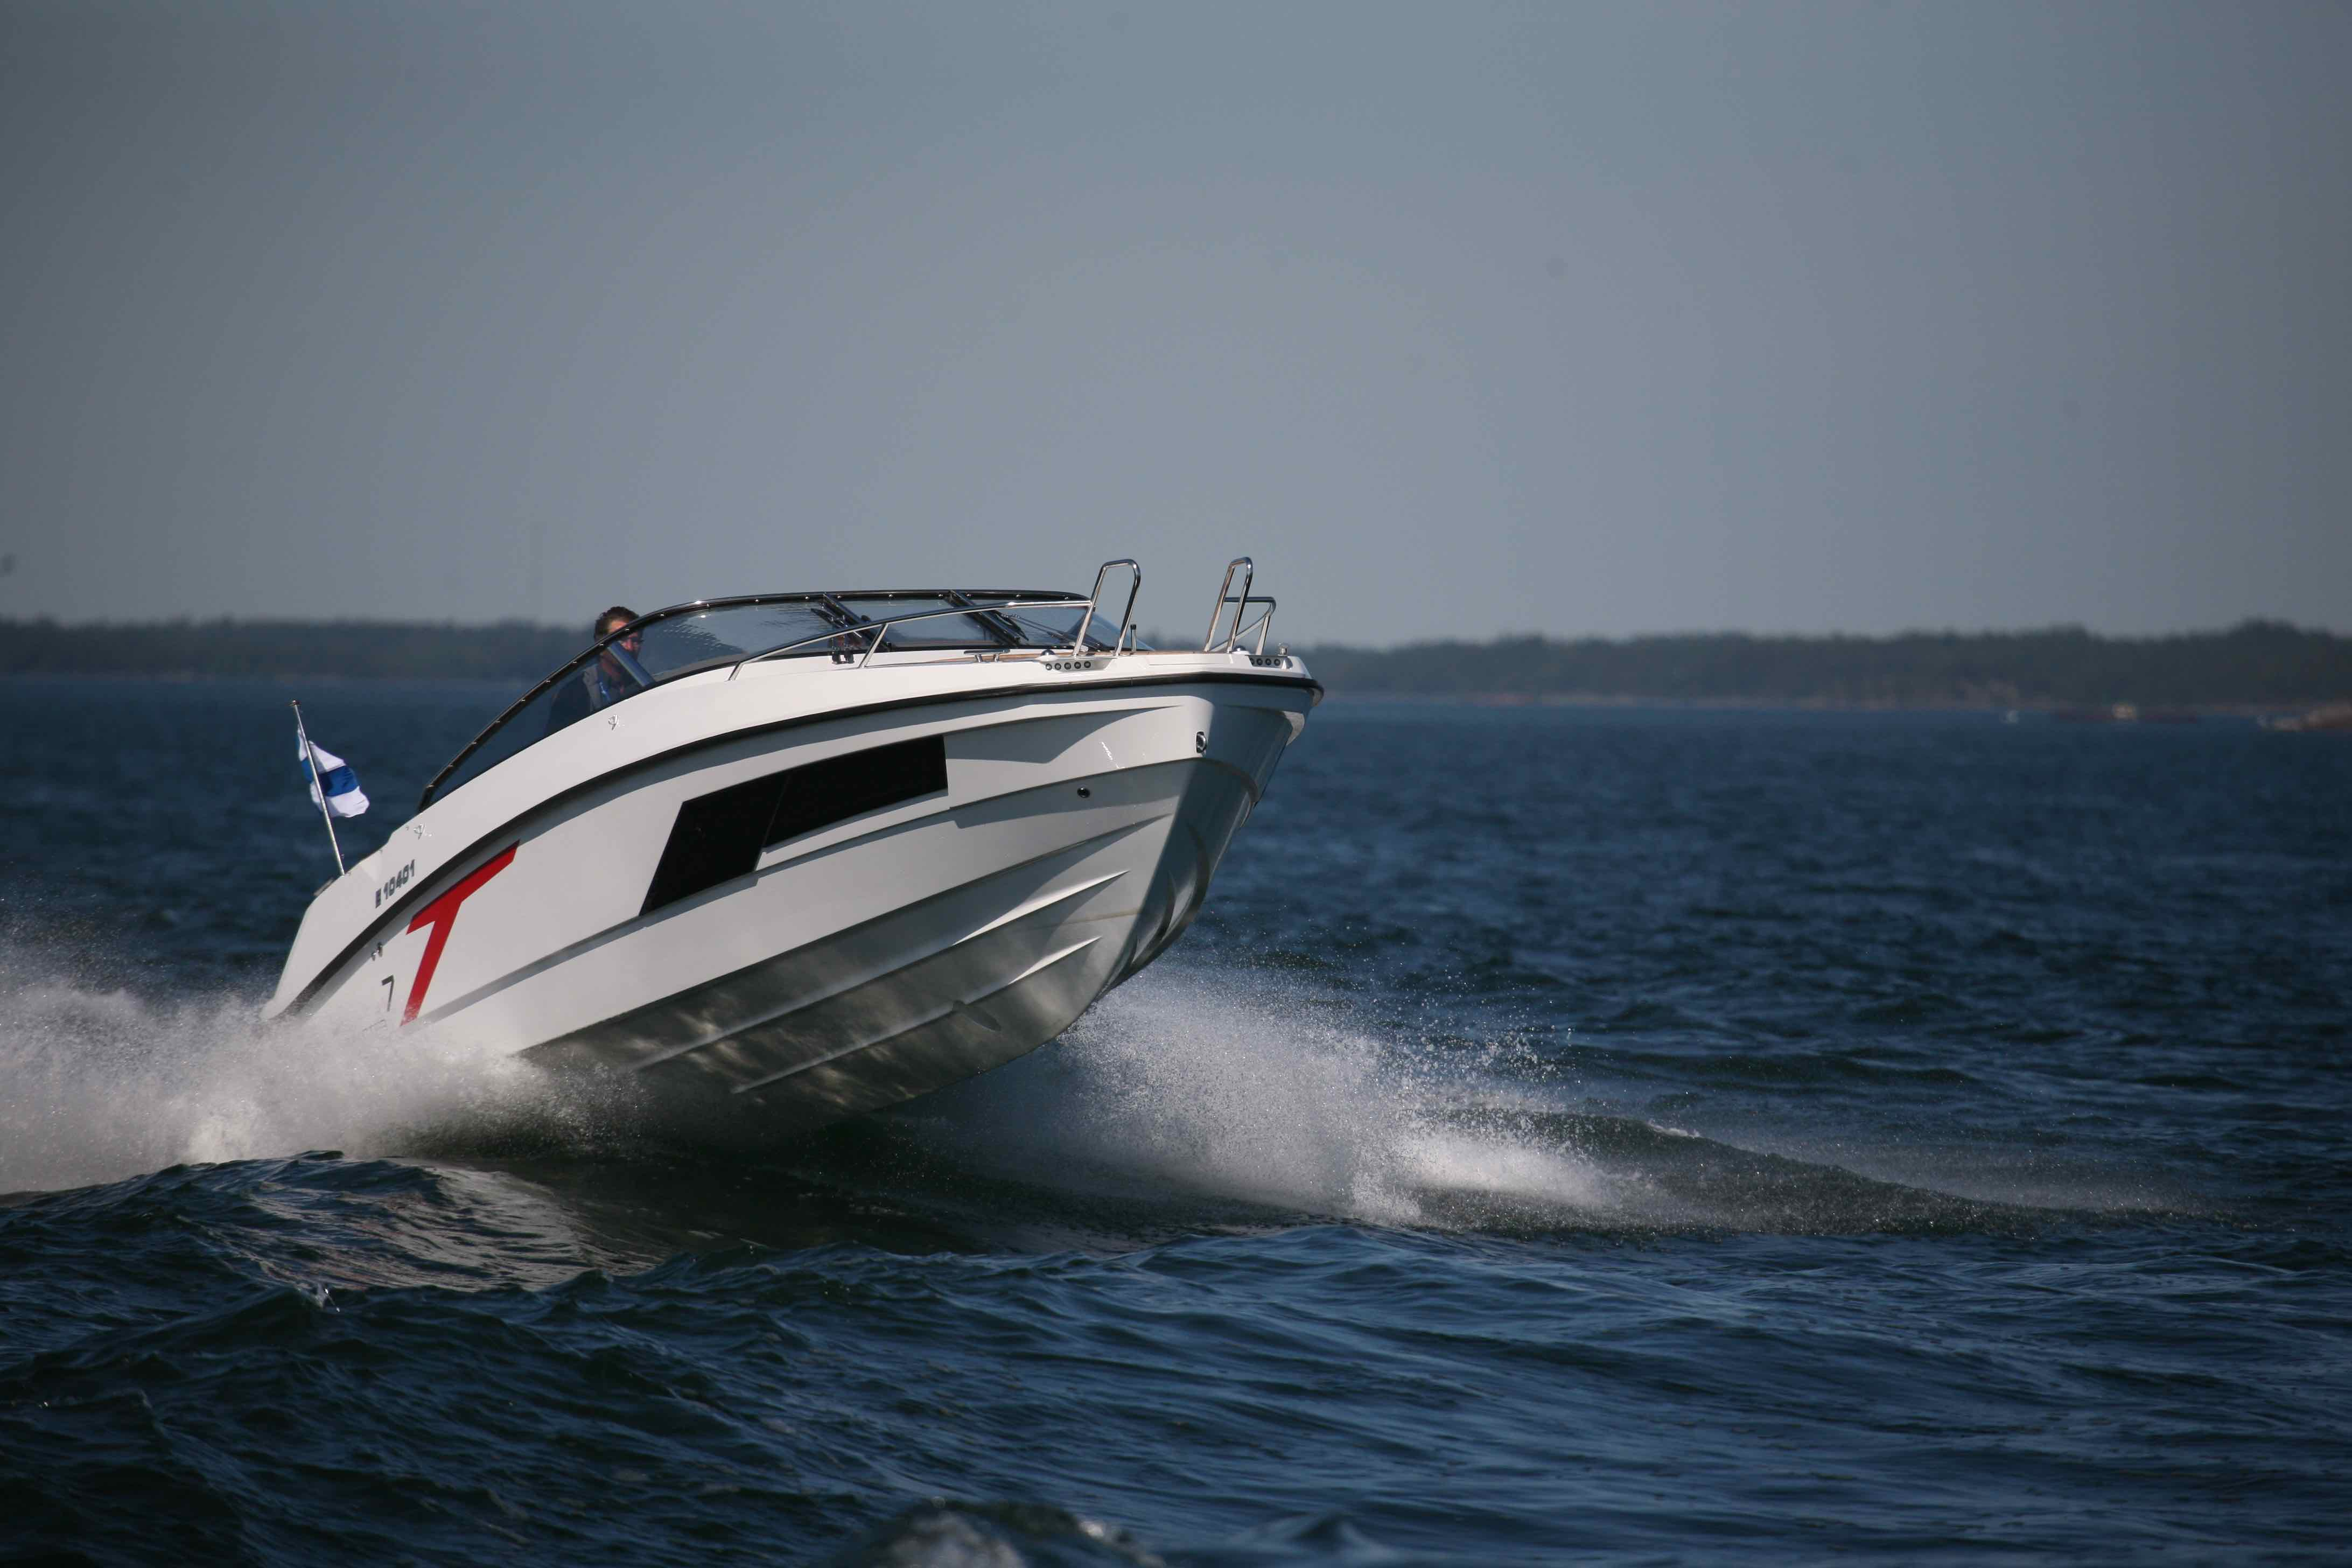 Done right, a good cuddy combines overnighting ability with an authentic sports boating experience